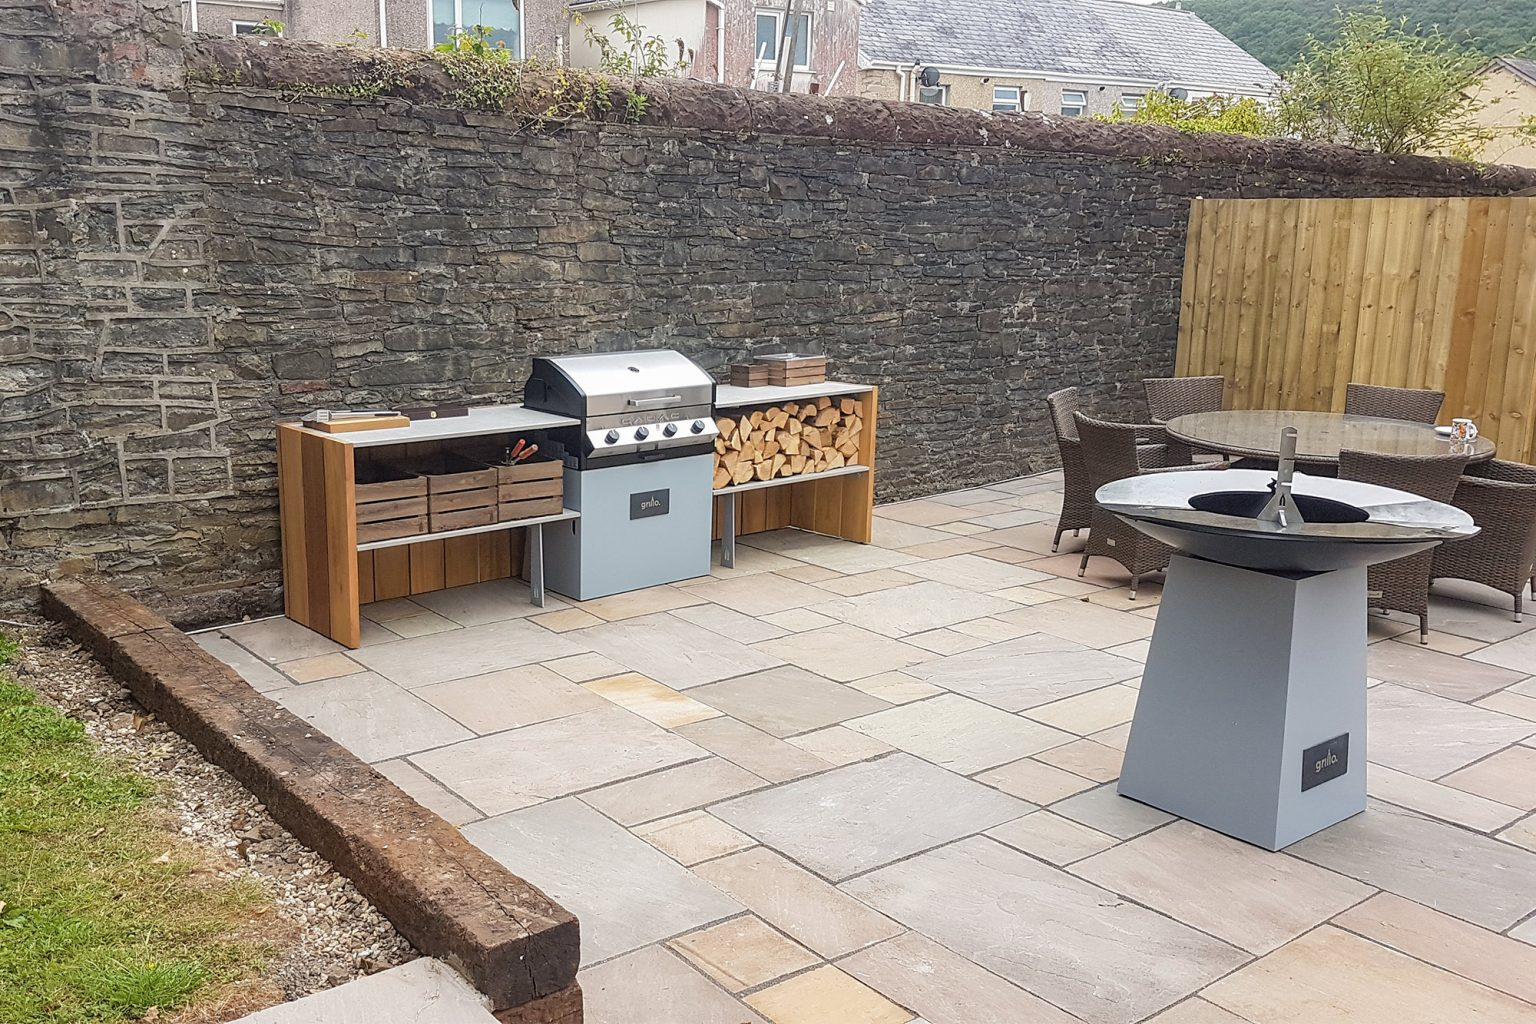 Grillo kitchen straight run with Cadac, logs and crates with anvil